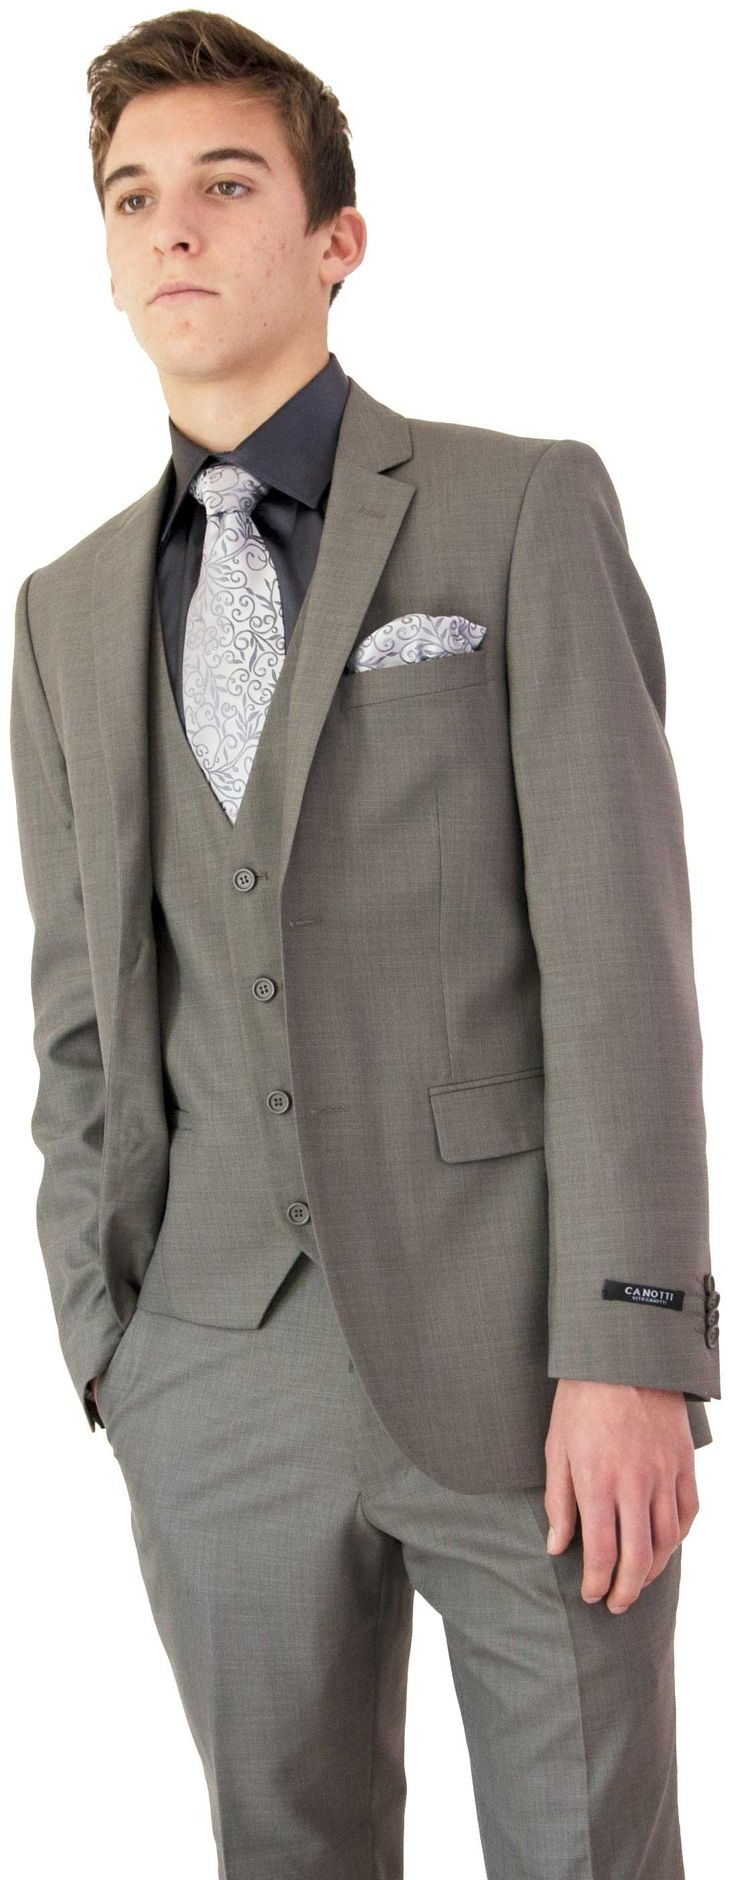 1000 images about suit on pinterest suits grey suit brown shoes and navy blue suit